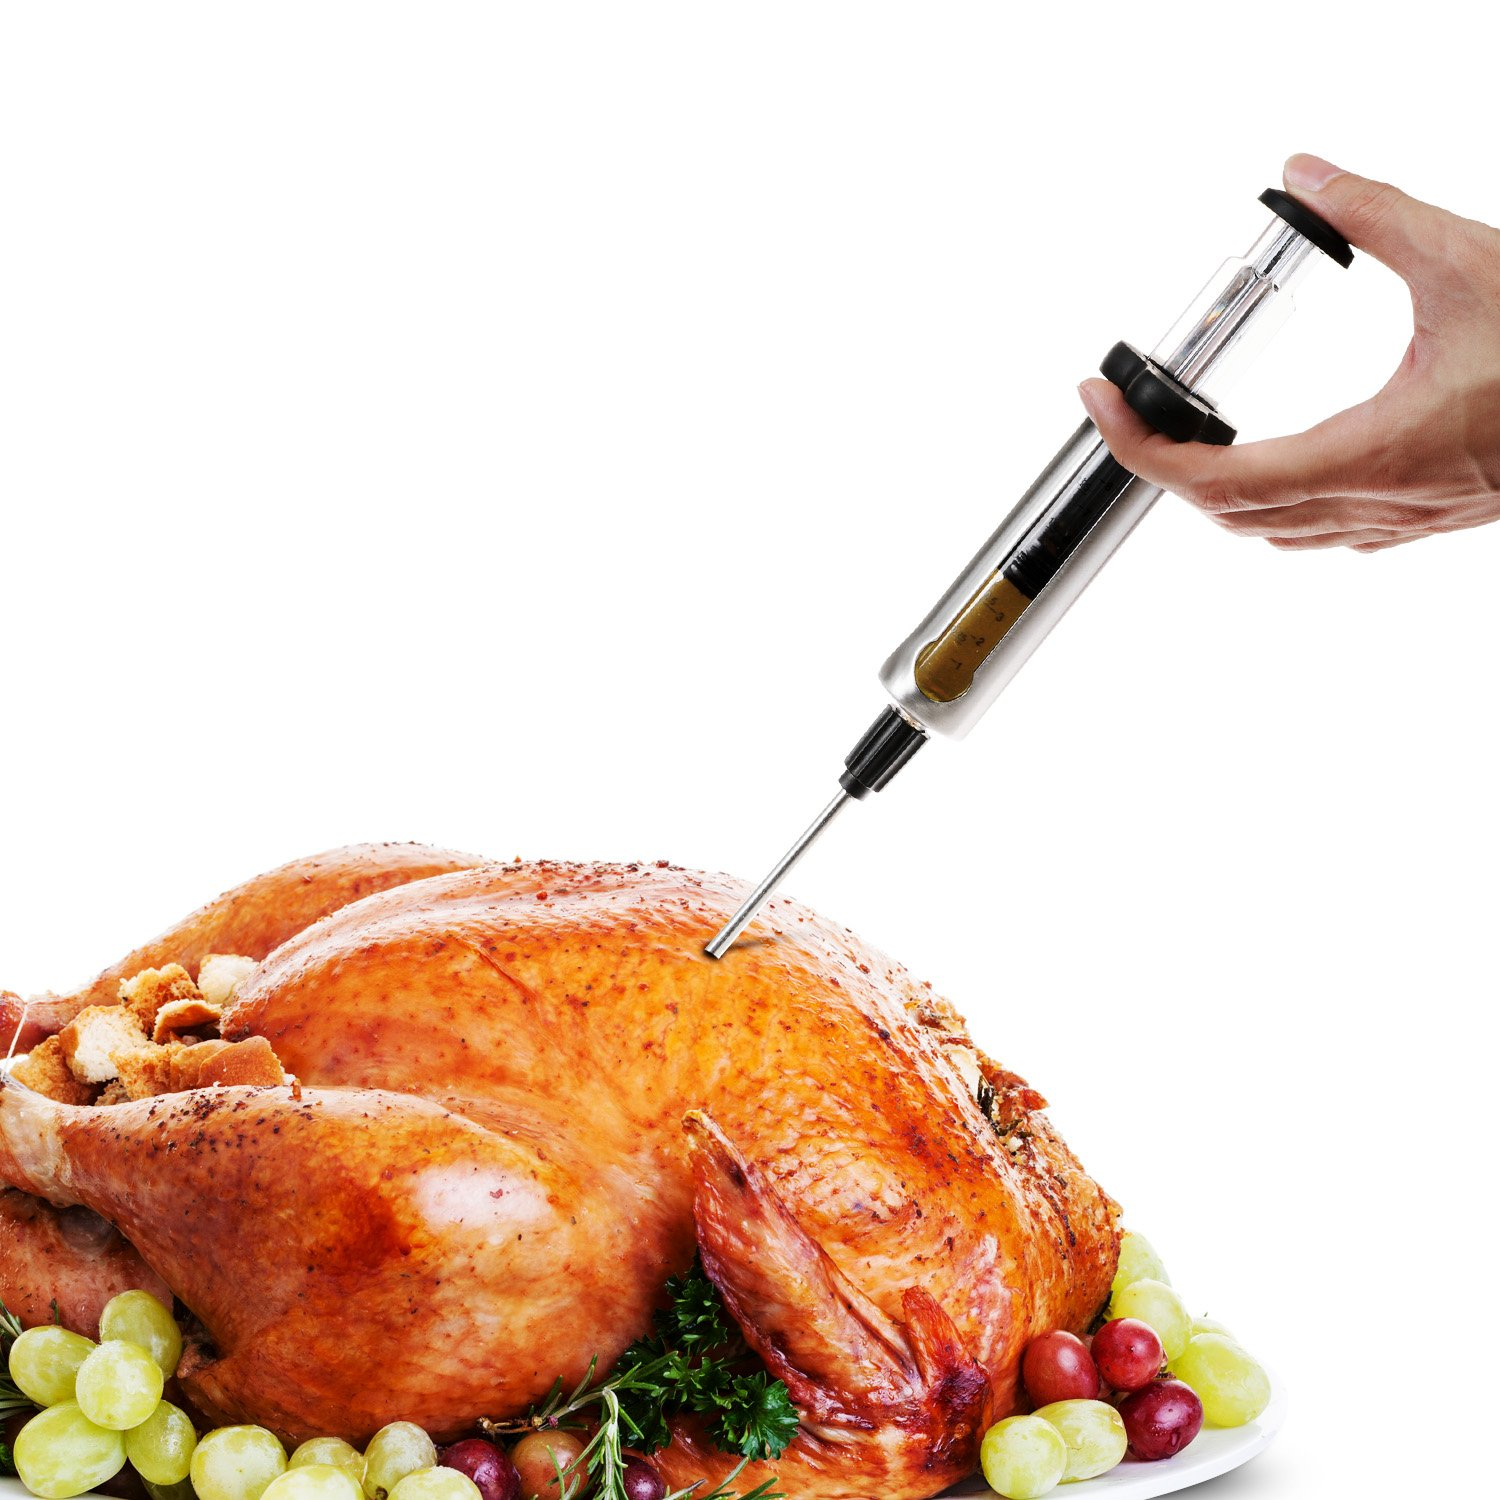 Miusco Stainless Steel Meat Injector Kit with Measurement Window and 2 Professional Marinade Needles by Miusco (Image #3)